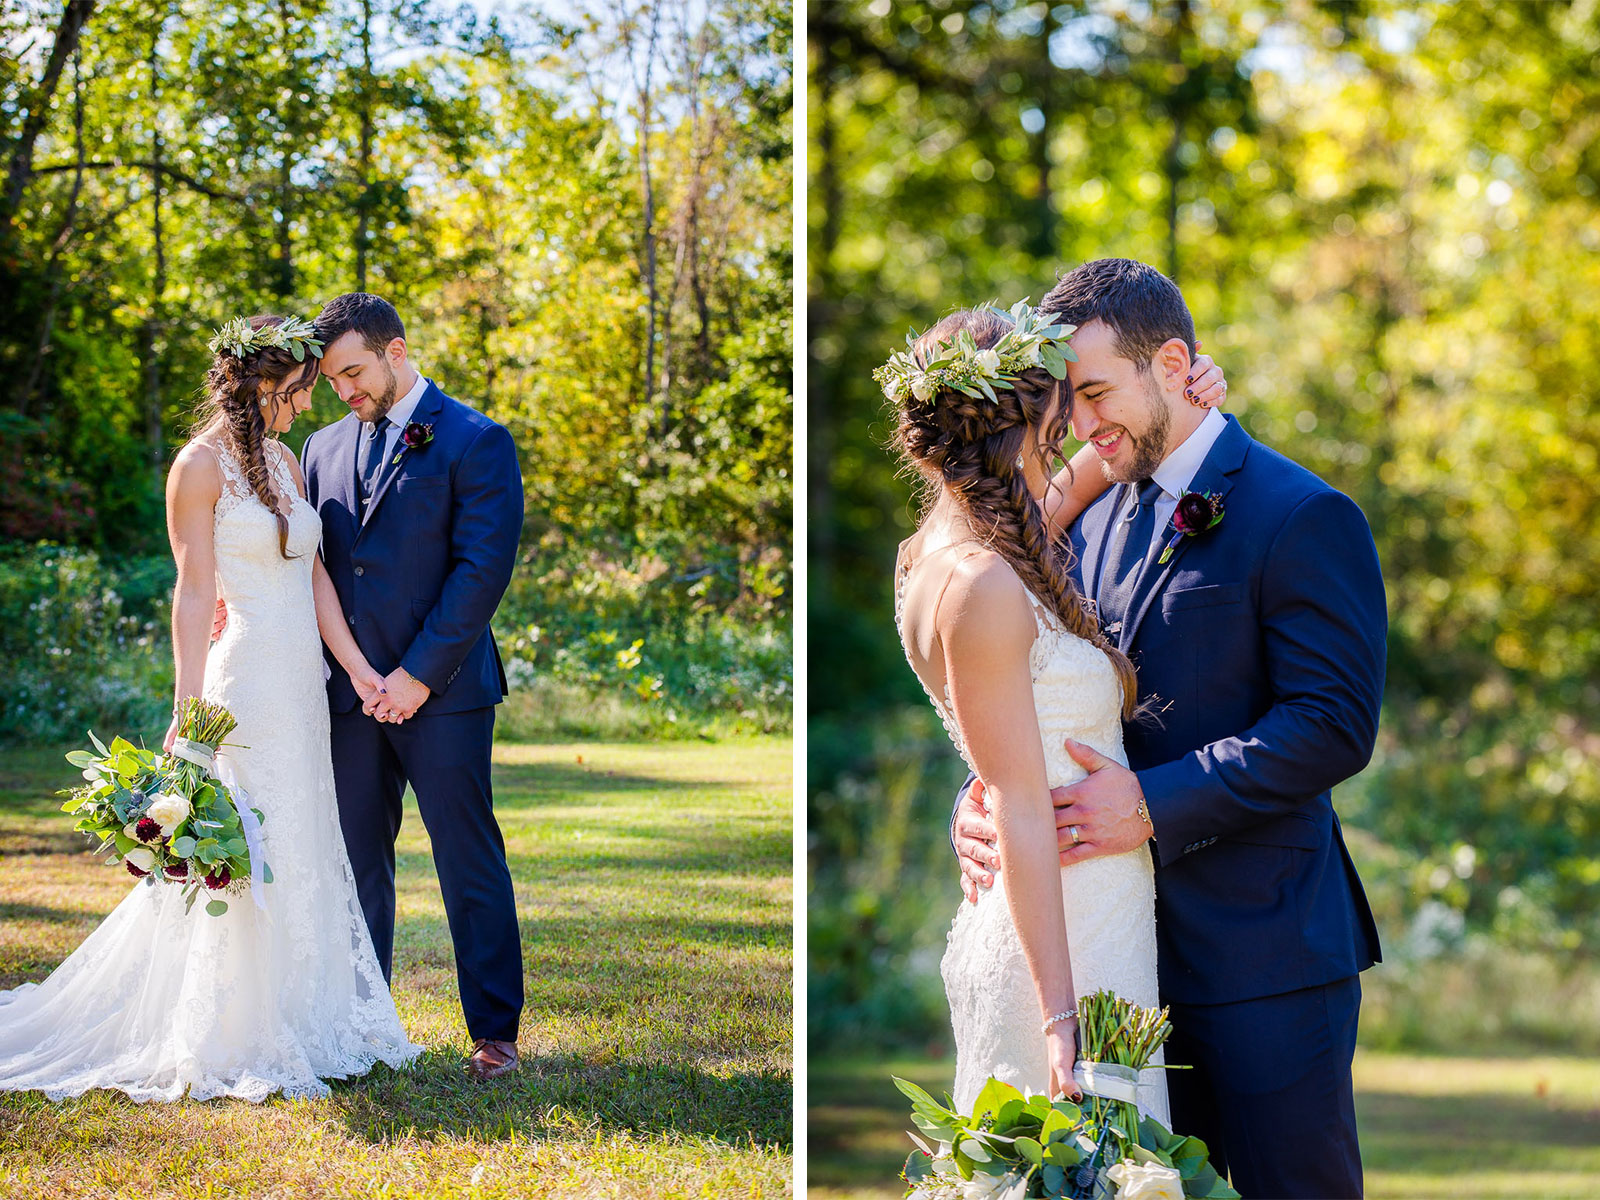 Eric_and_Christy_Photography_Blog_Stephanie_Nick_Wedding-33-34